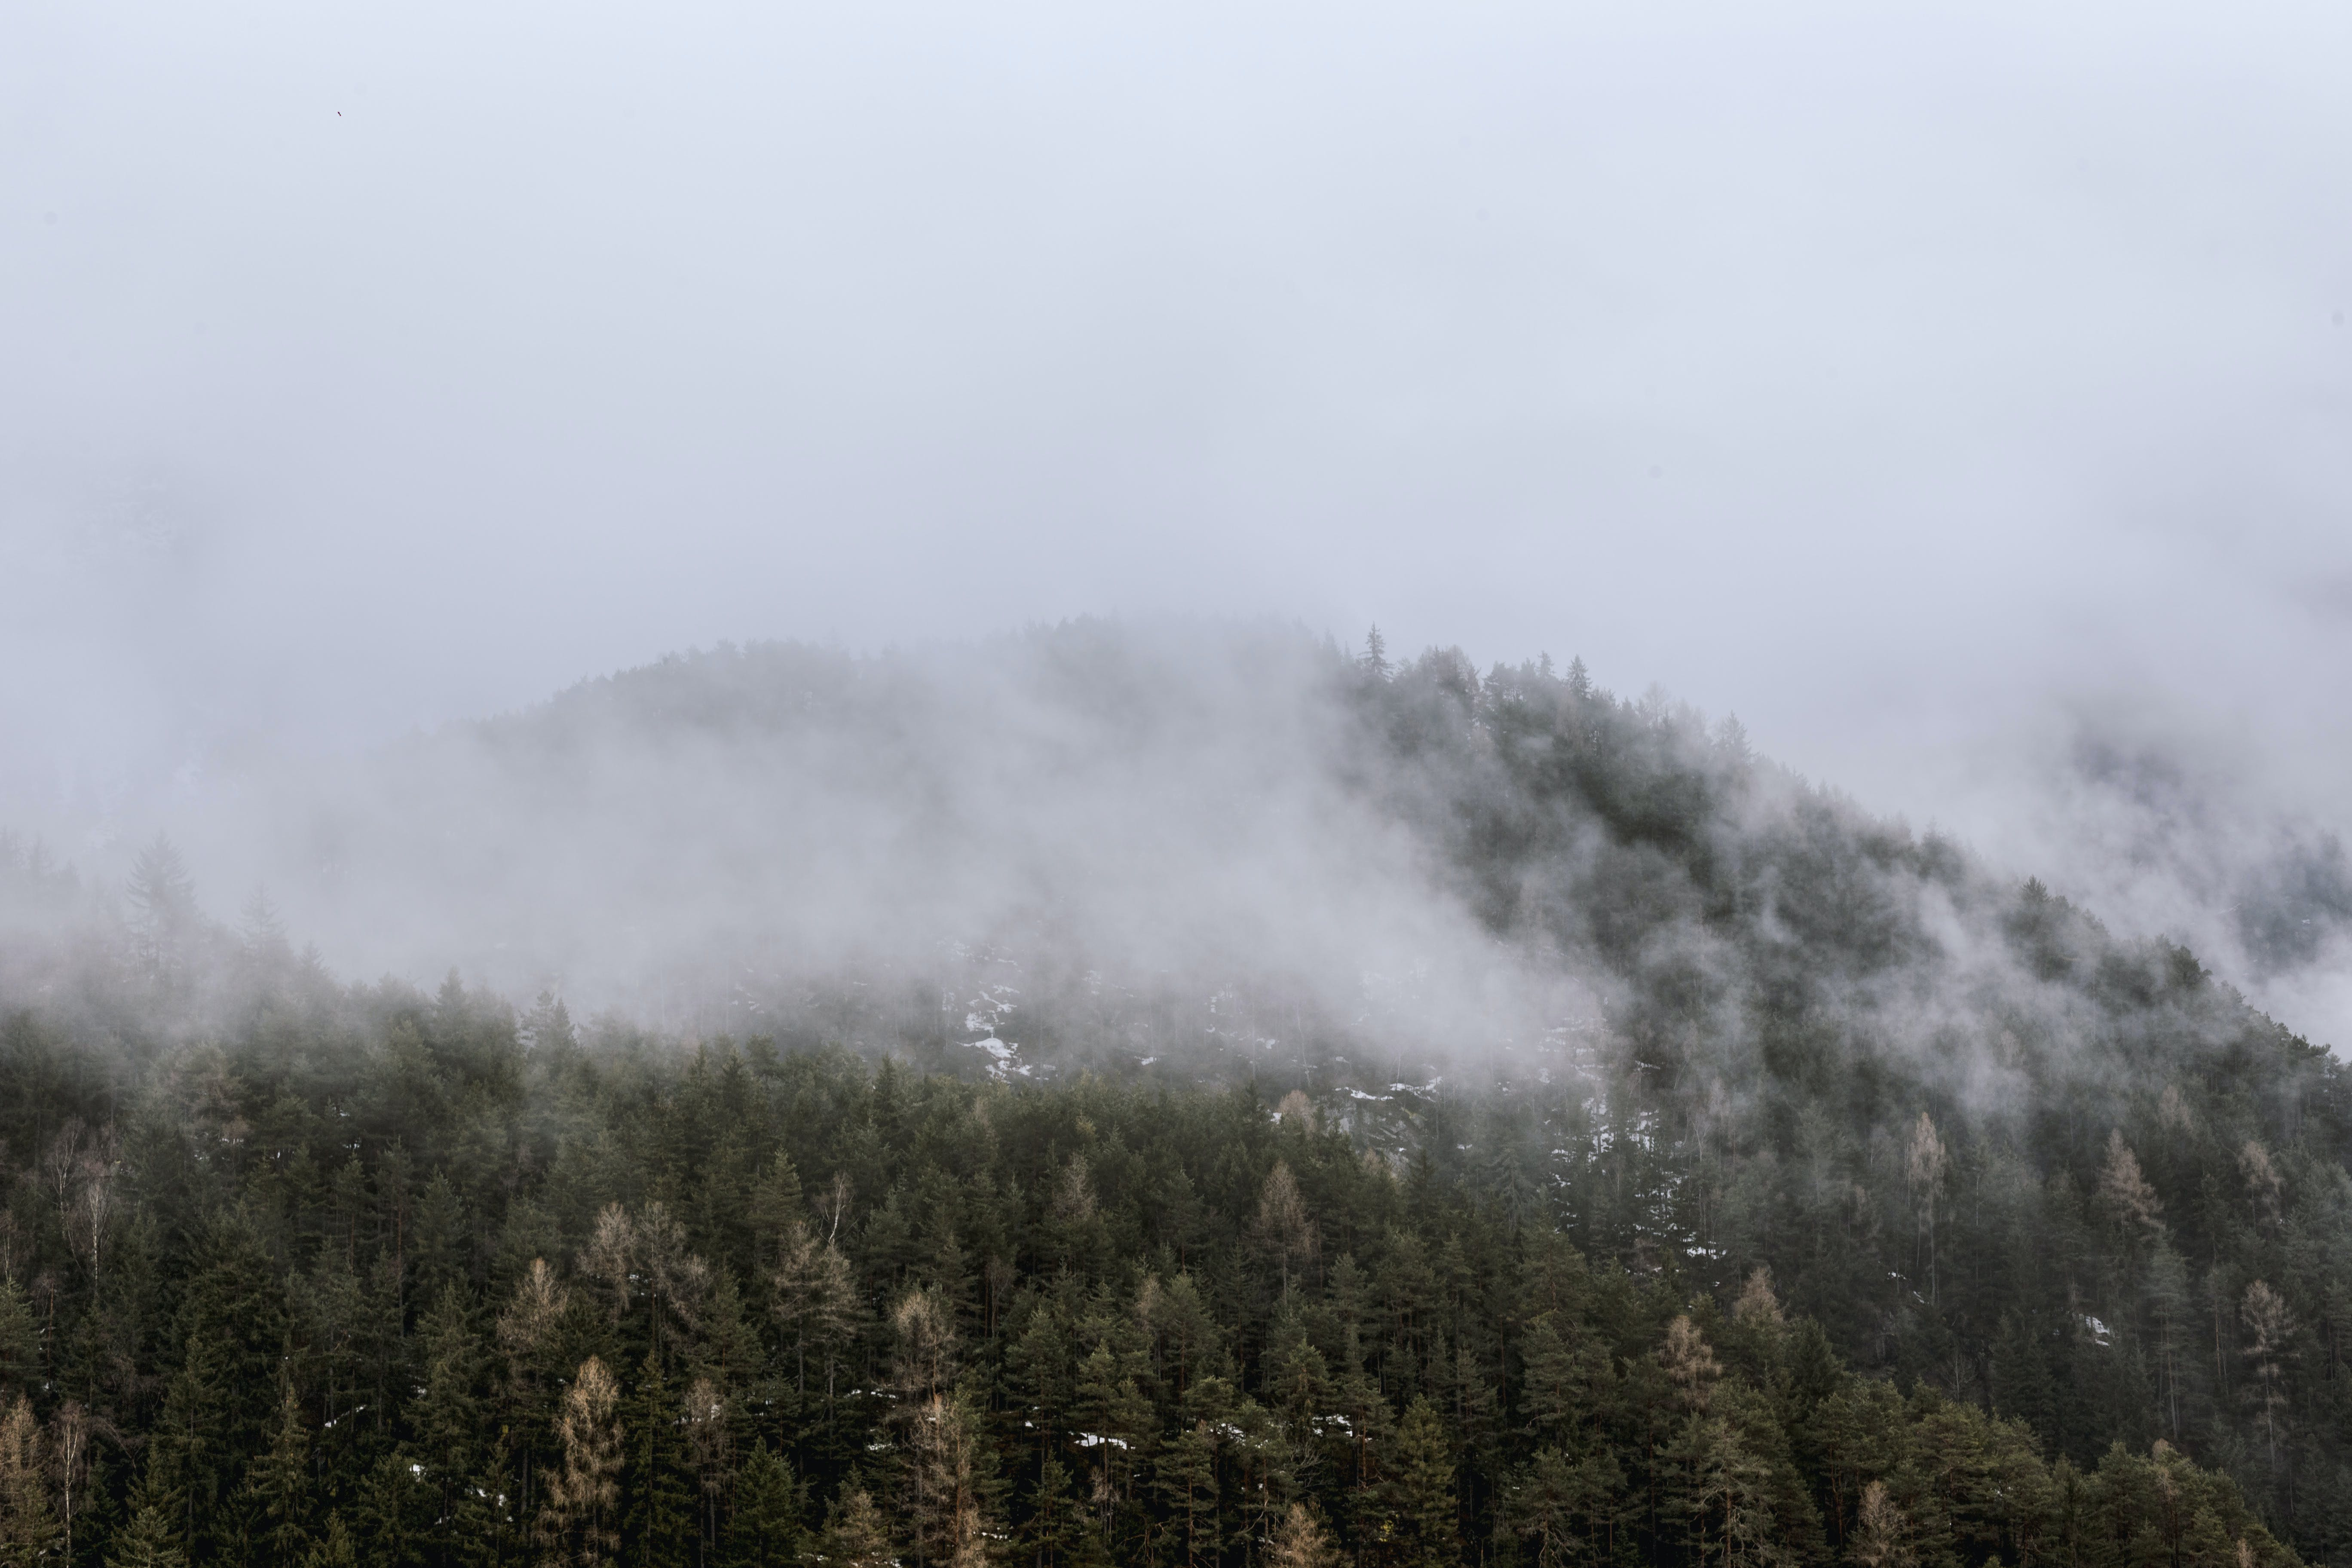 View of Green Mountain Covered by Fog